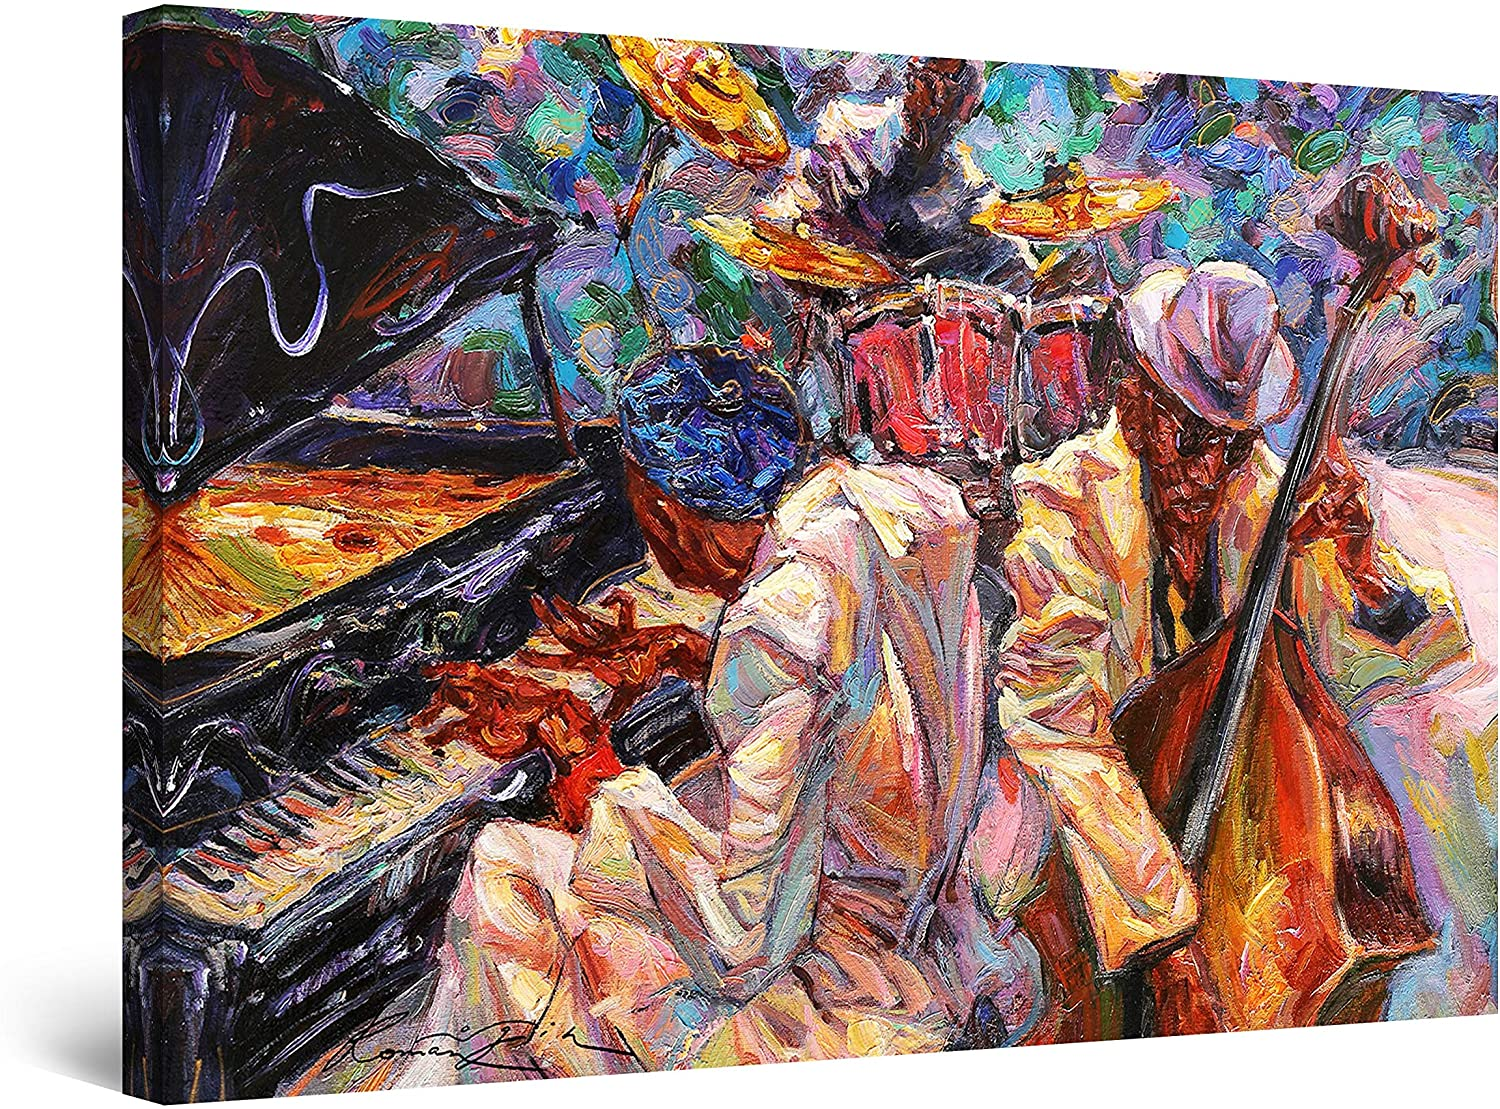 Startonight Canvas Wall Art Abstract - Orange Jazz Orchestra Music Painting - Large Artwork Print for Living Room 32